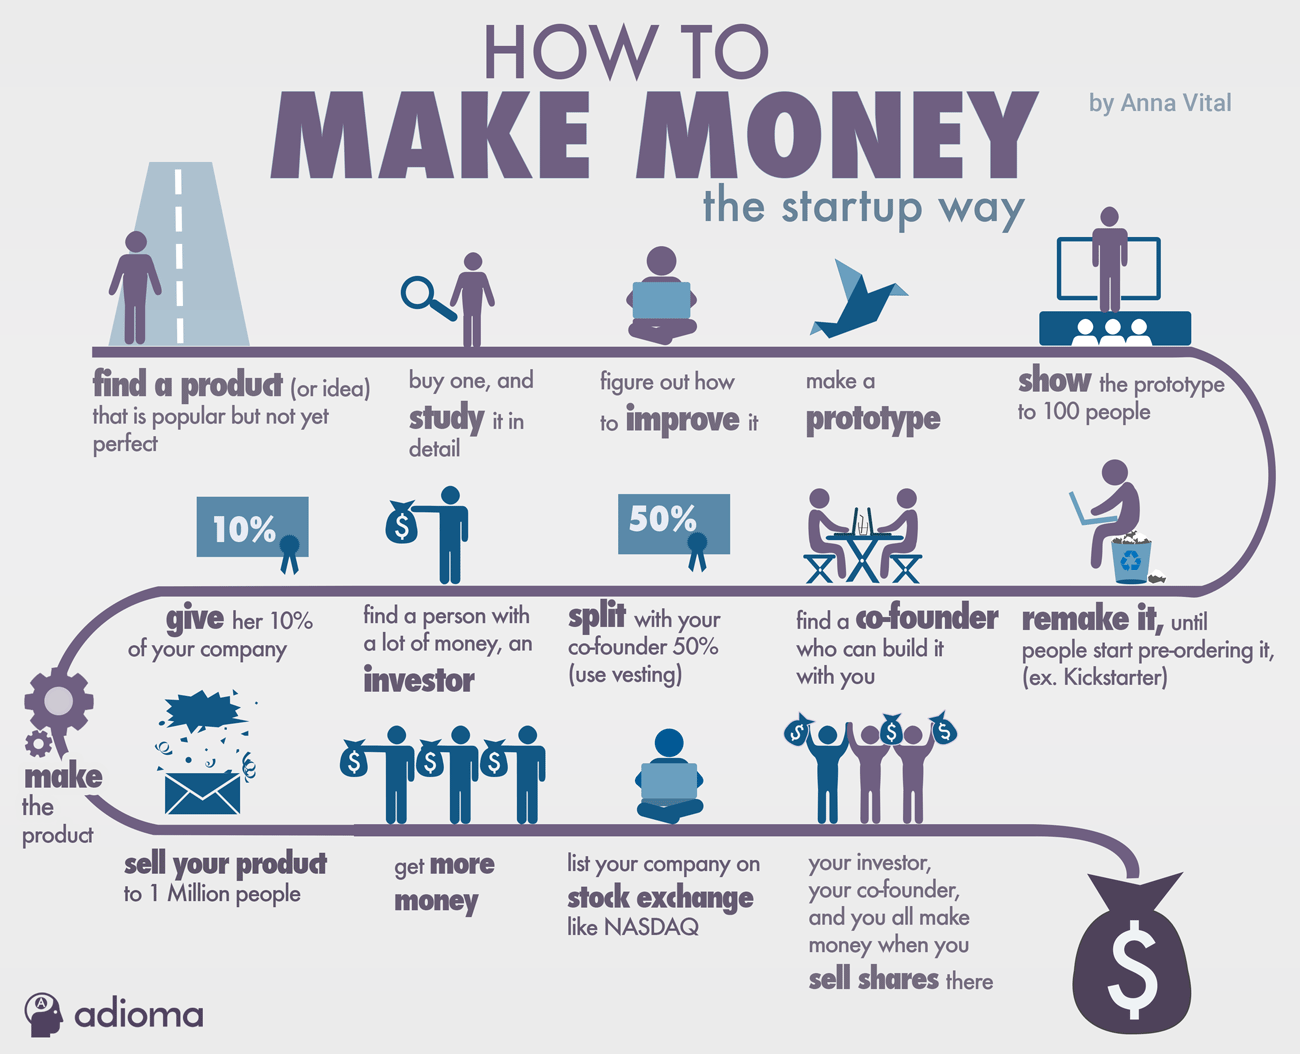 How to make money the startup way - infographic